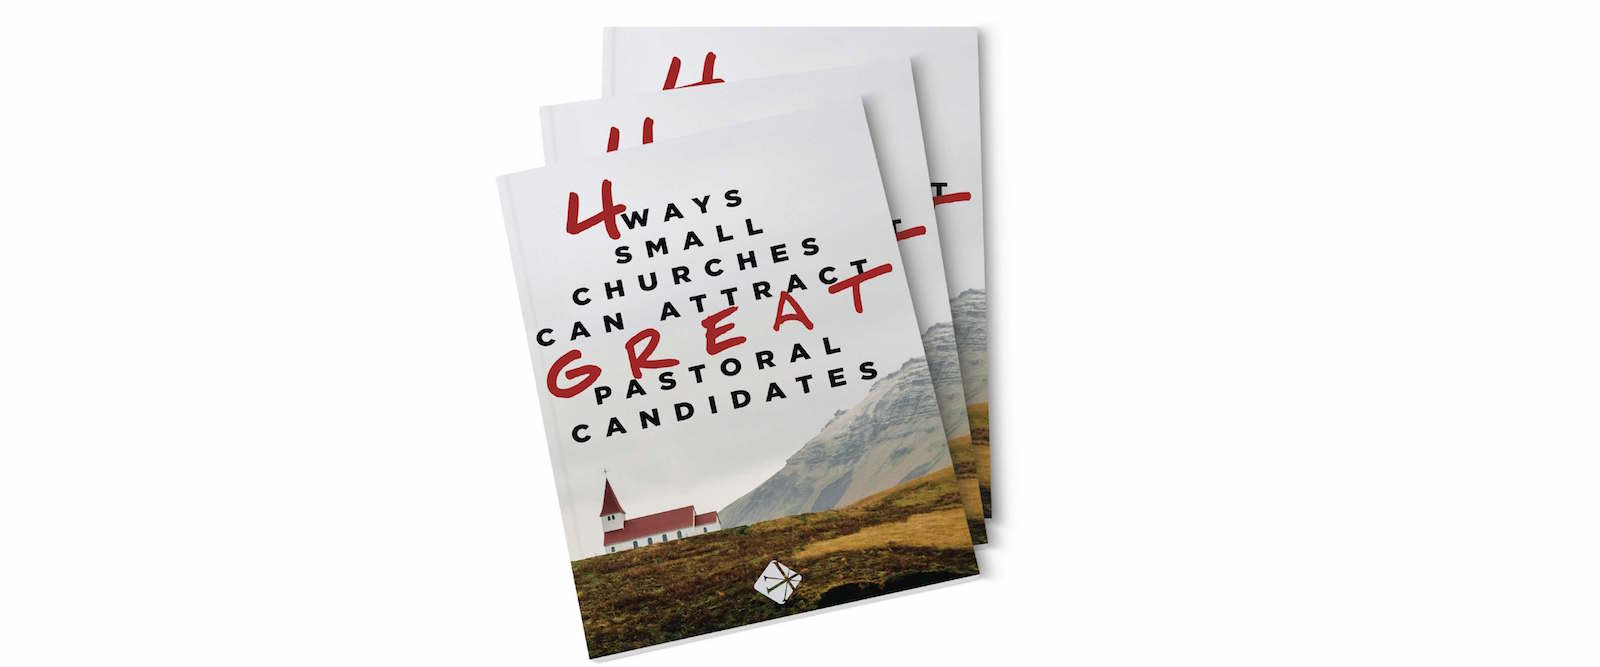 4_Ways_Small_Churches_Attract_Pastoral_Candidates